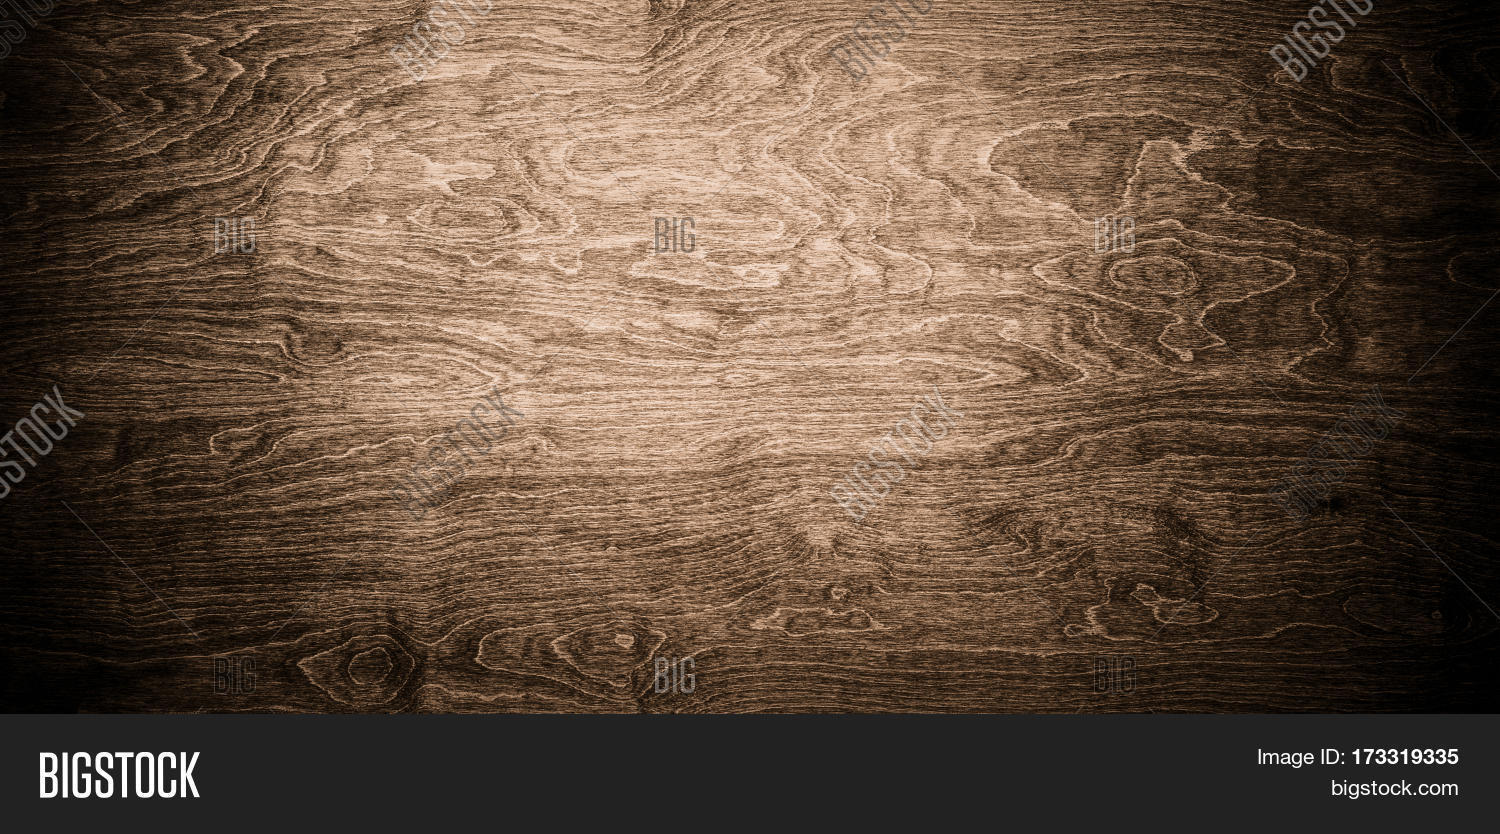 Old vintage white natural wood or wooden texture background or - Old Wood Texture Background Surface Wood Texture Table Surface Top View Vintage Wood Texture